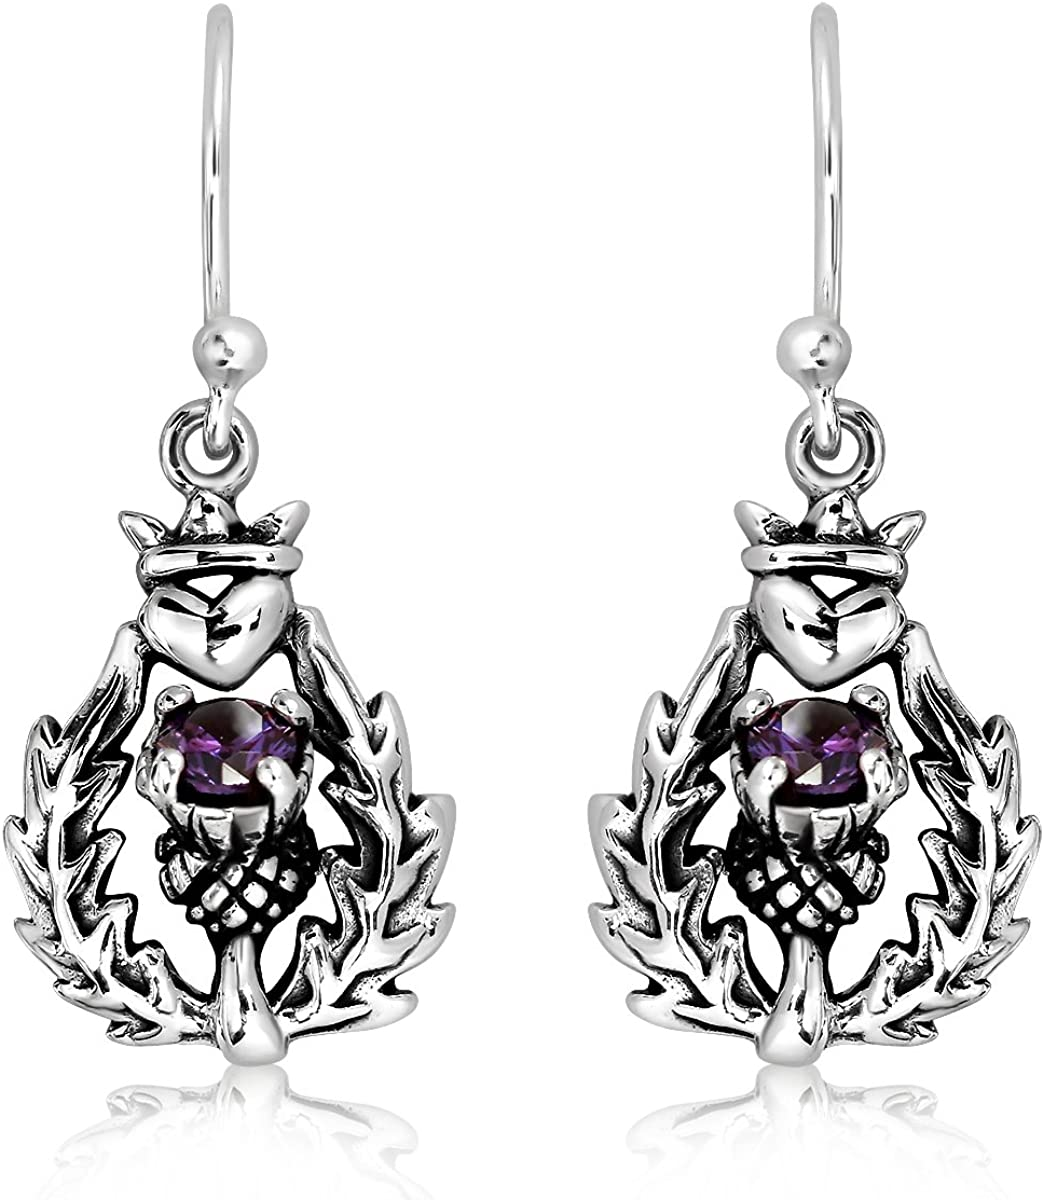 Love Heart Hanging Earrings Black Simulated CZ .925 Sterling Silver